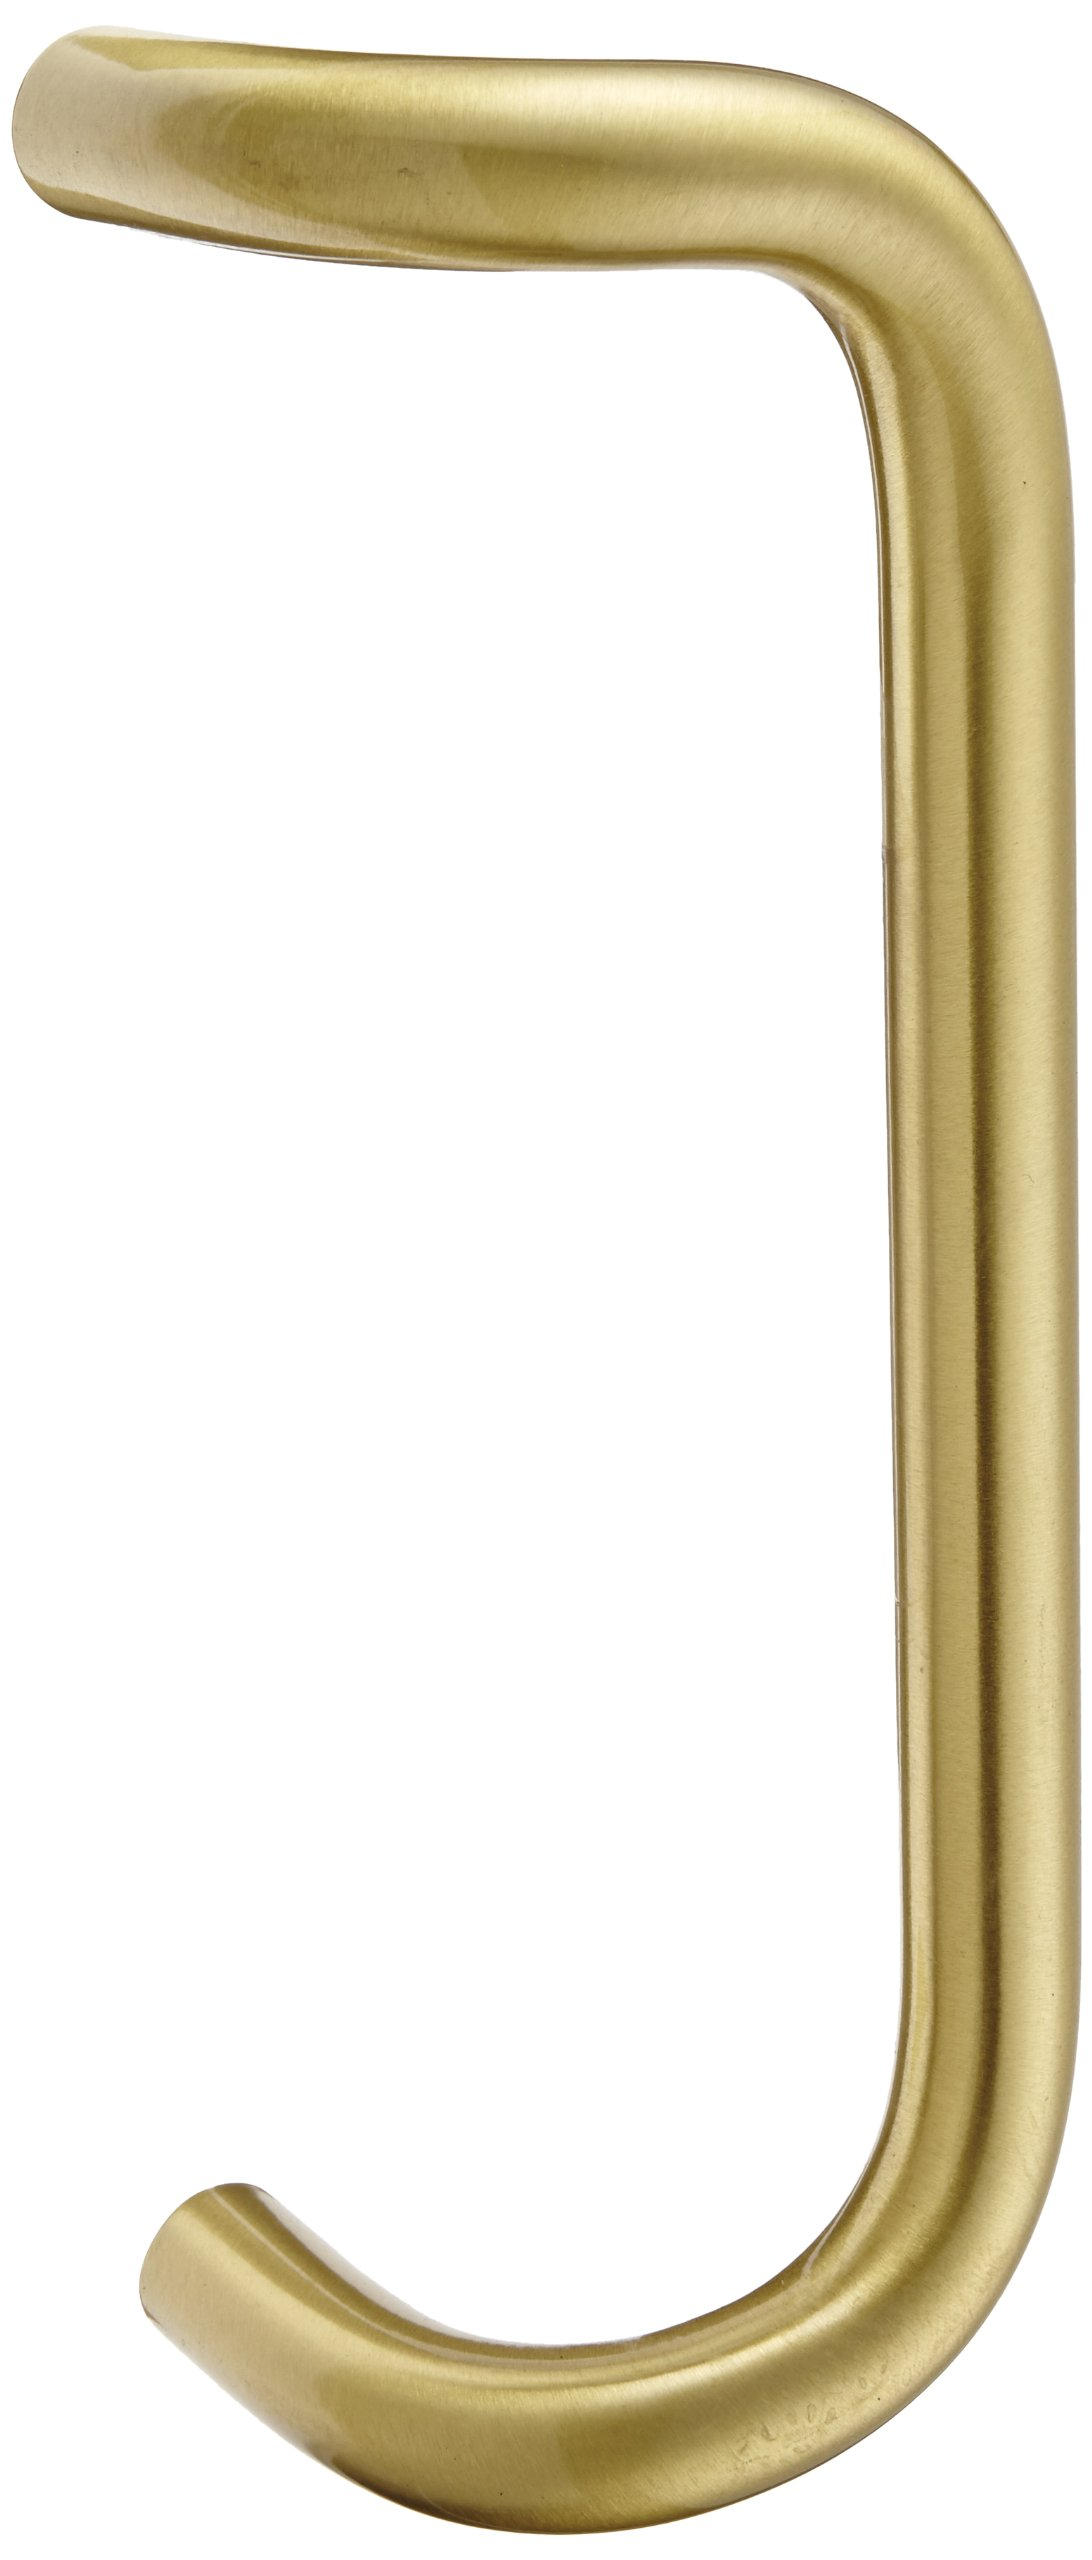 Rockwood BF158.4 Brass 90-Degree Offset Door Pull, 1'' Diameter x 12'' Center-to-Center, Through Bolt Mounting for 1-3/4'' Door, Satin Clear Coated Finish